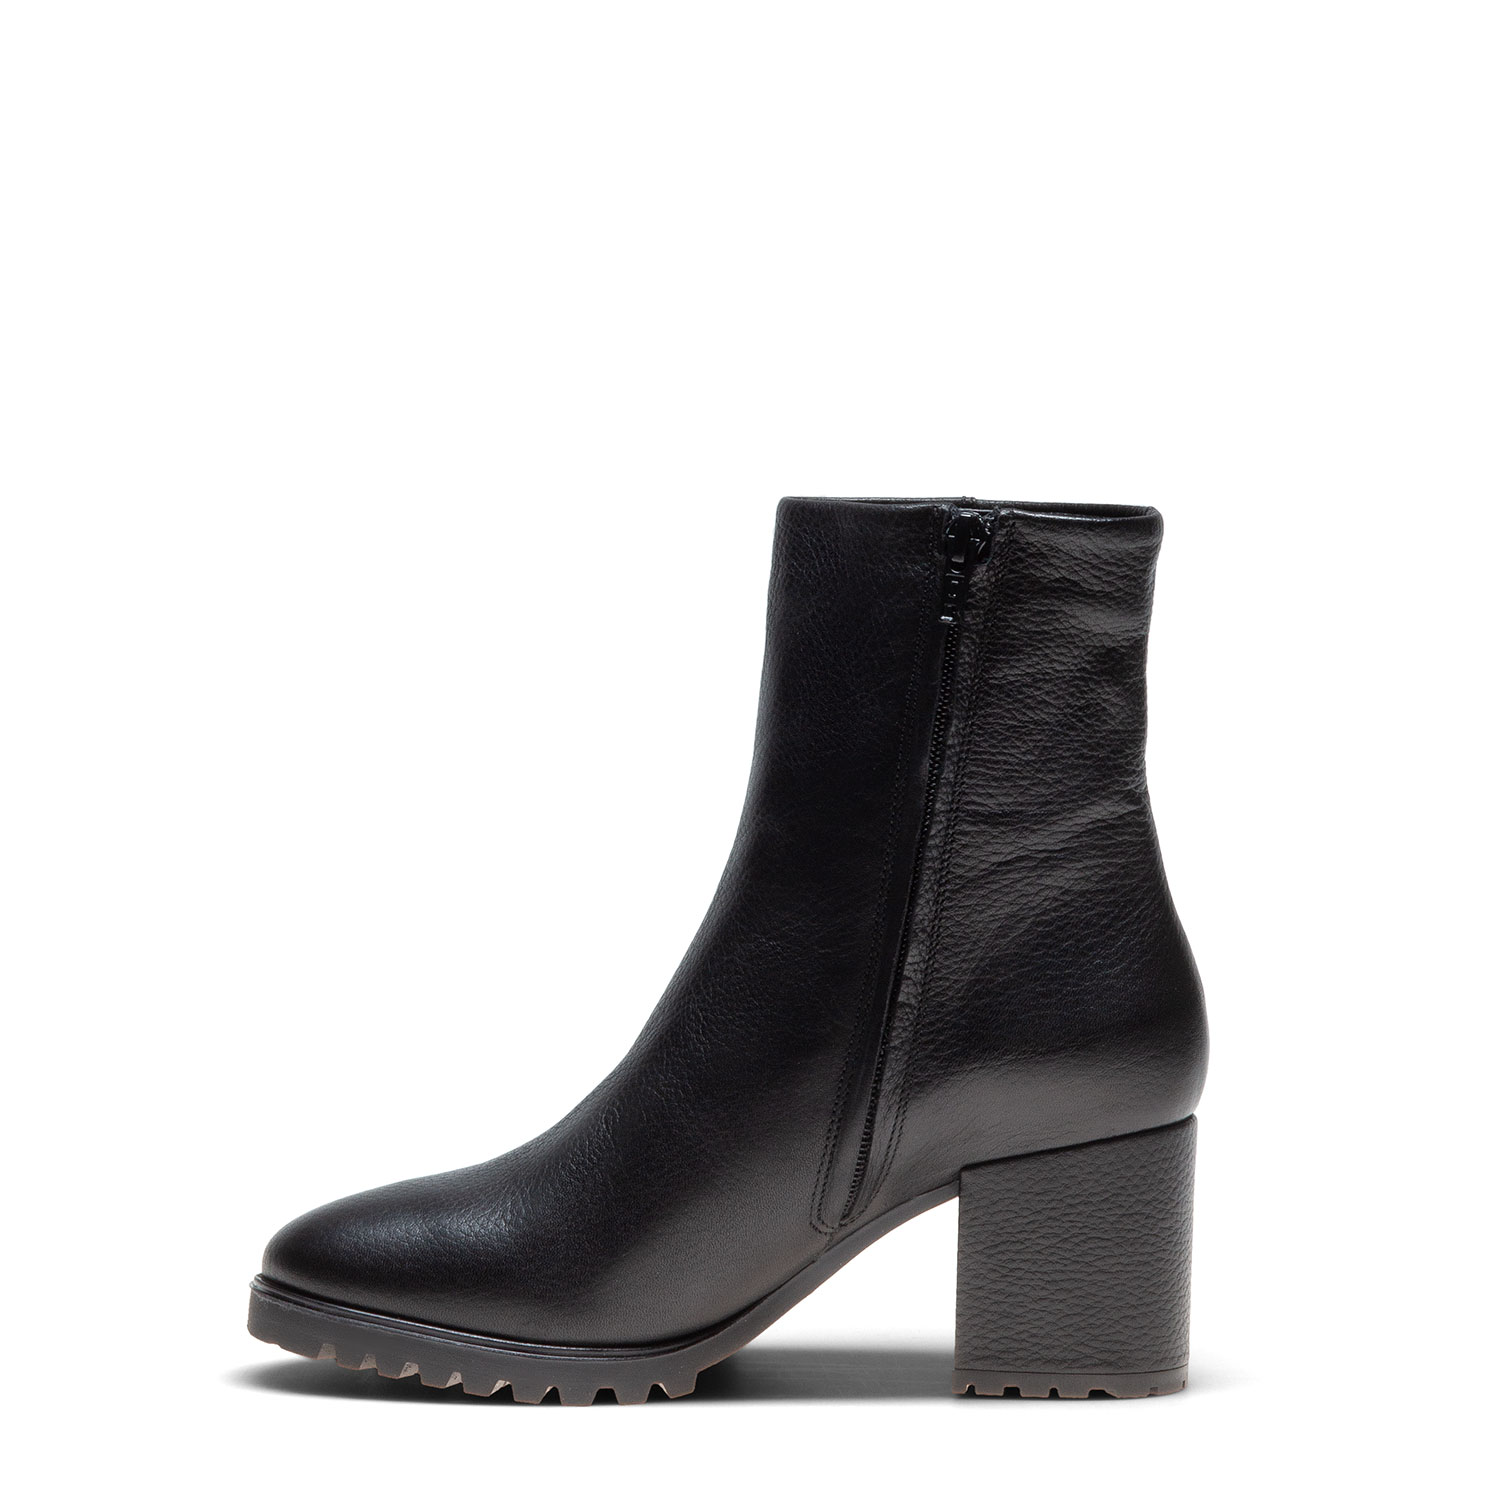 Women's ankle boots PAZOLINI AM-X4637-1